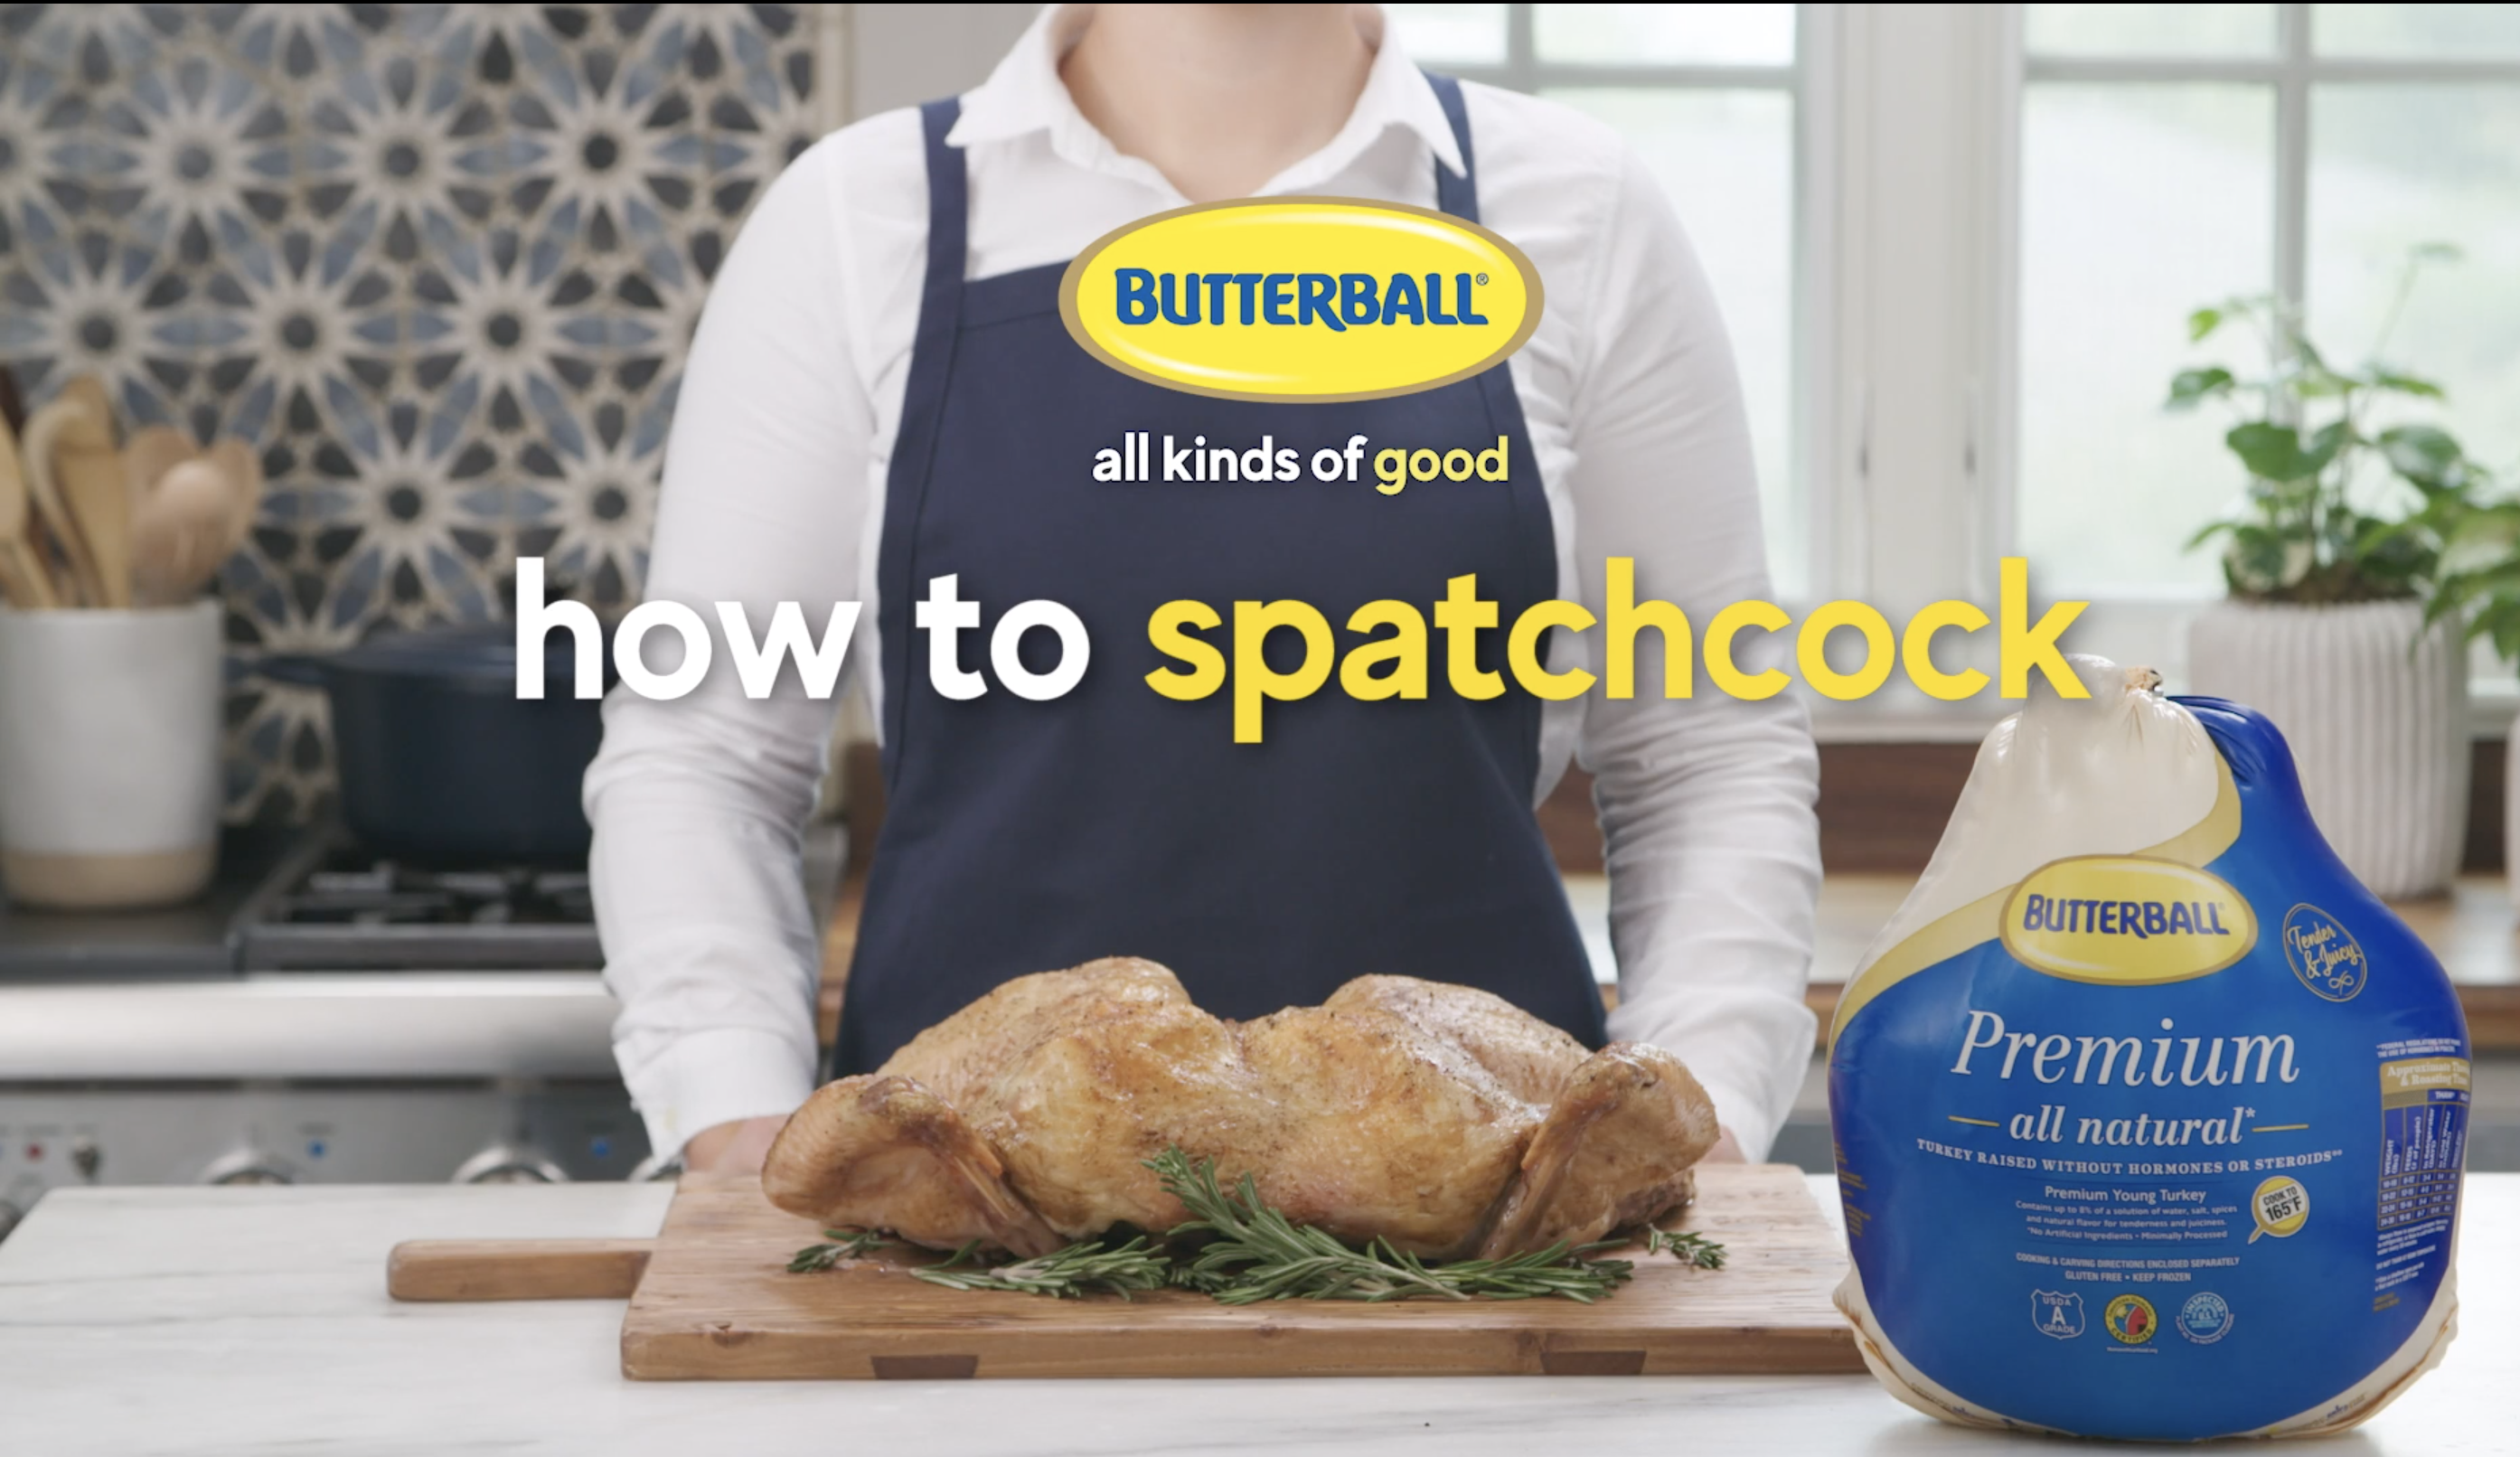 Butterball How to Spatchcock video thumbnail